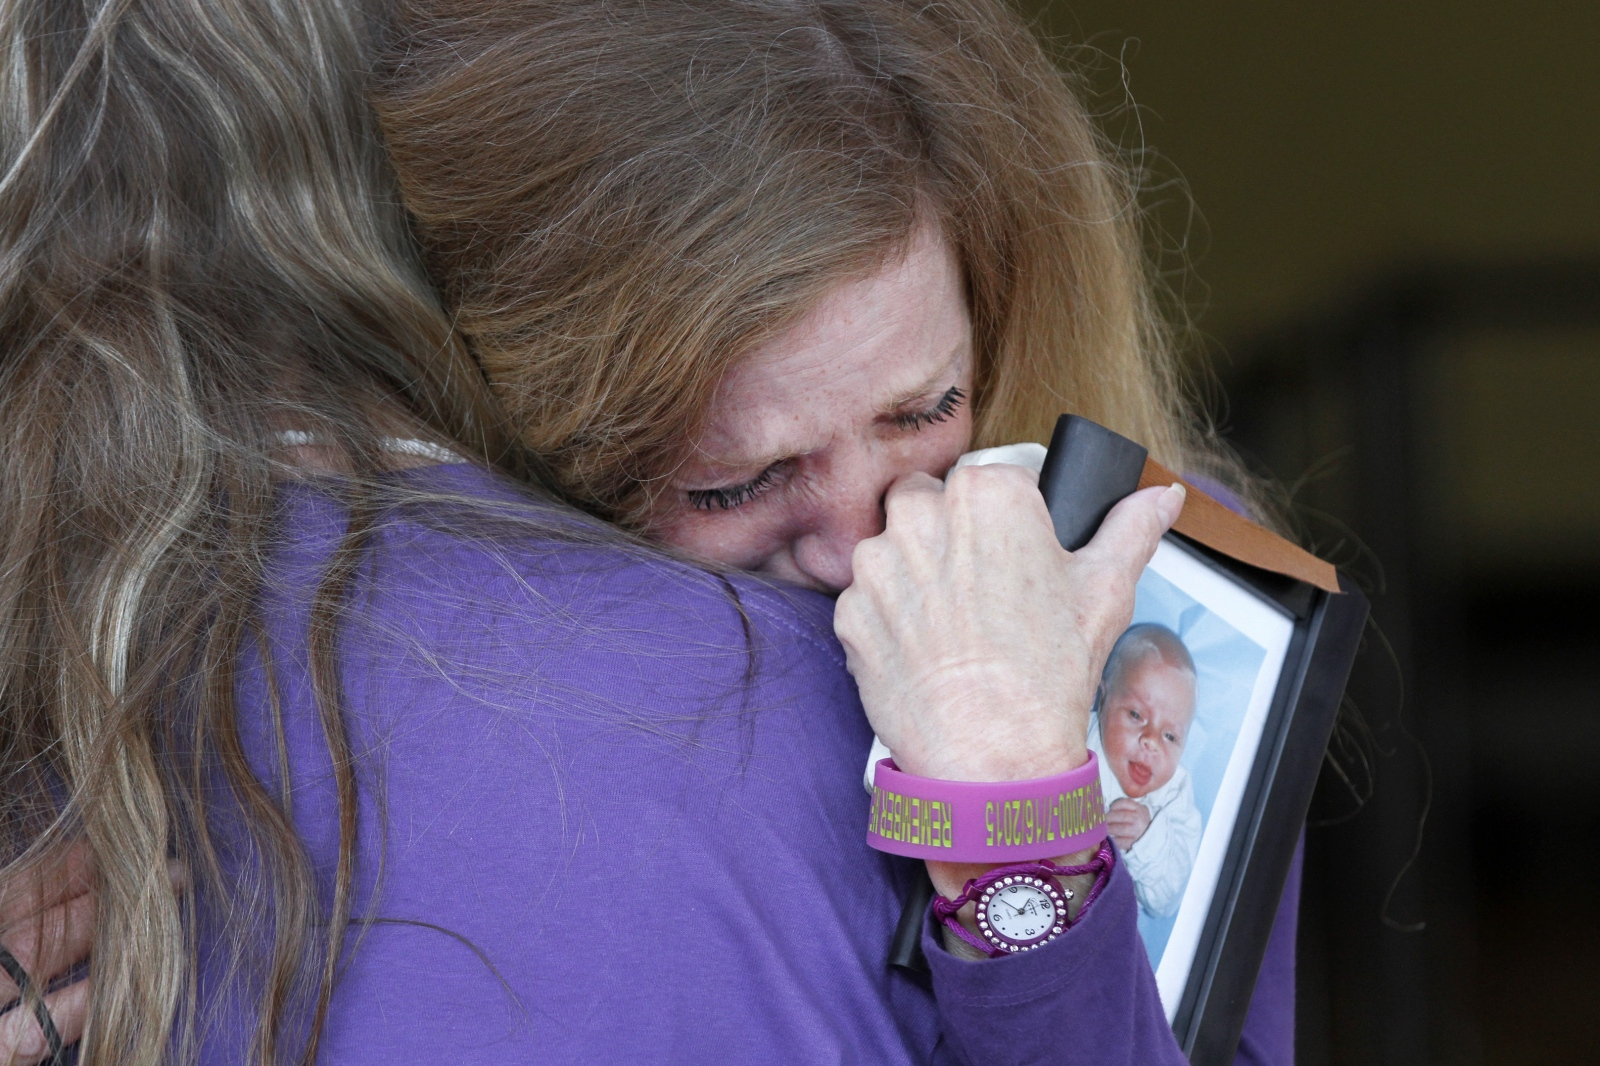 Teresa Savaikie hugs her daughter outside the Santa Clarita Courthouse on June 21, 2016 ahead of a hearing for the man accused of fatally striking Savaikie's son, Wyatt, in a crosswalk in July 2015. Katharine Lotze/The Signal